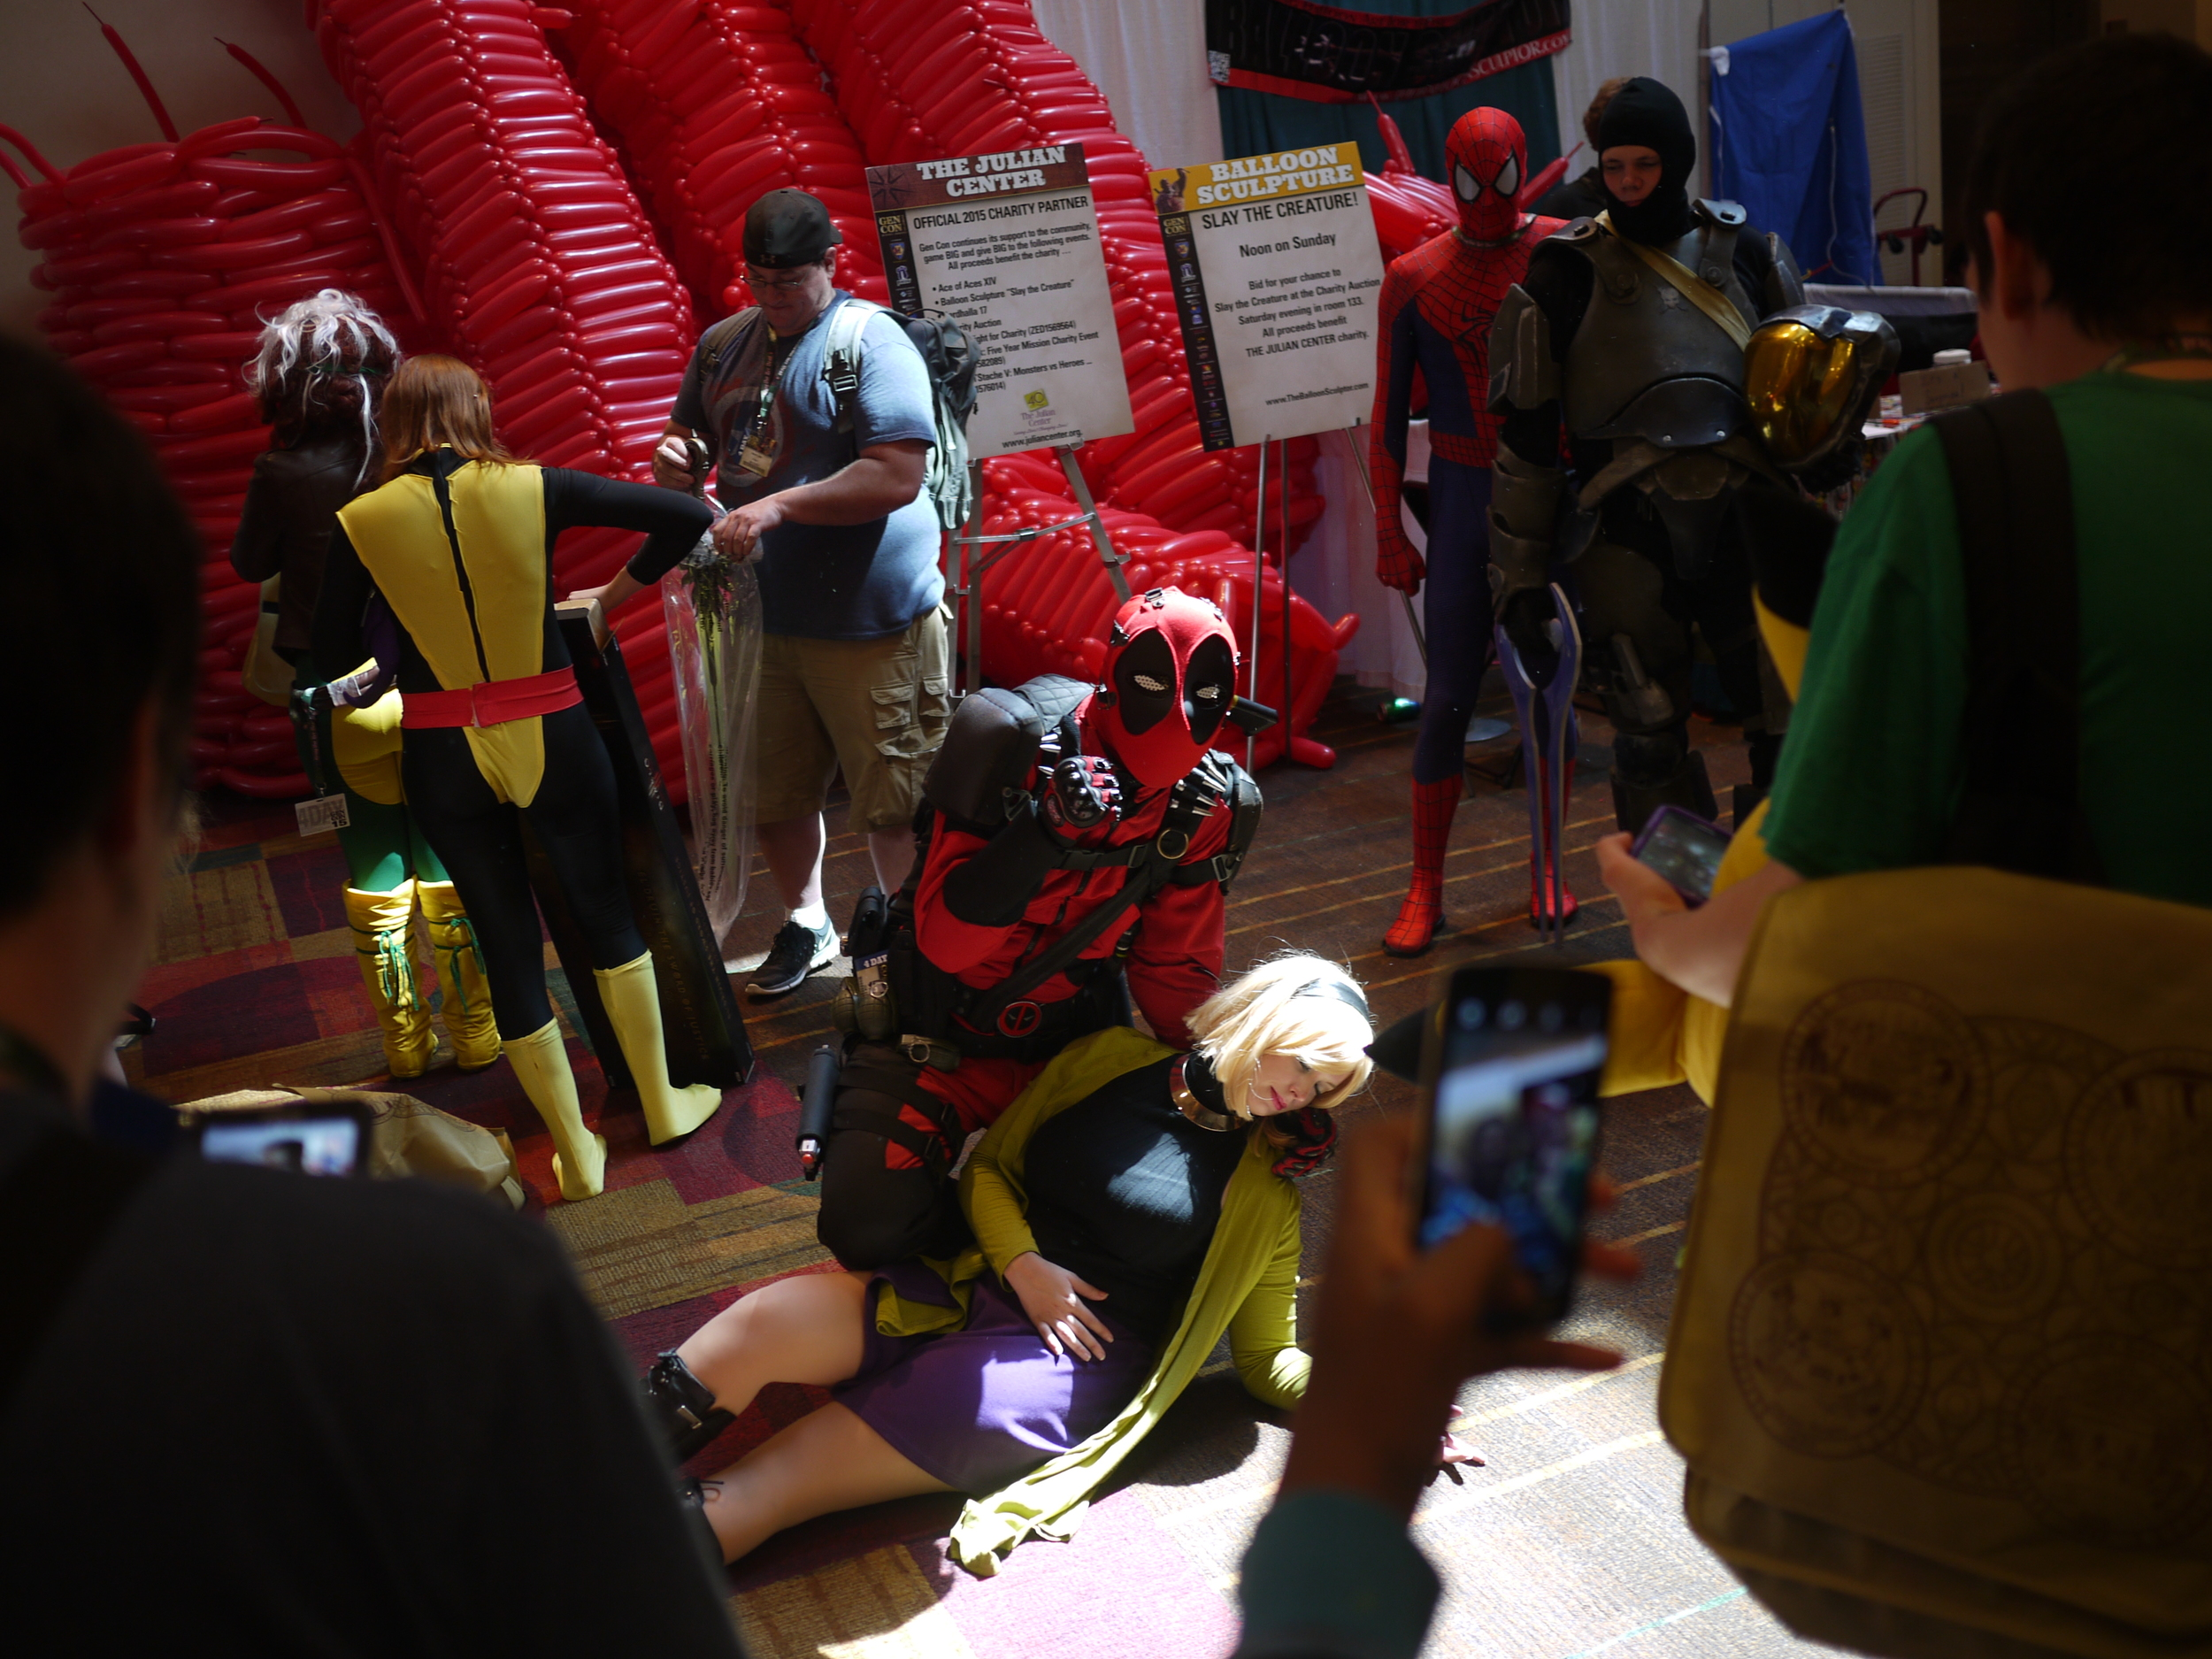 This Deadpool is also a member of the press. Thats some real Gonzo Journalism.